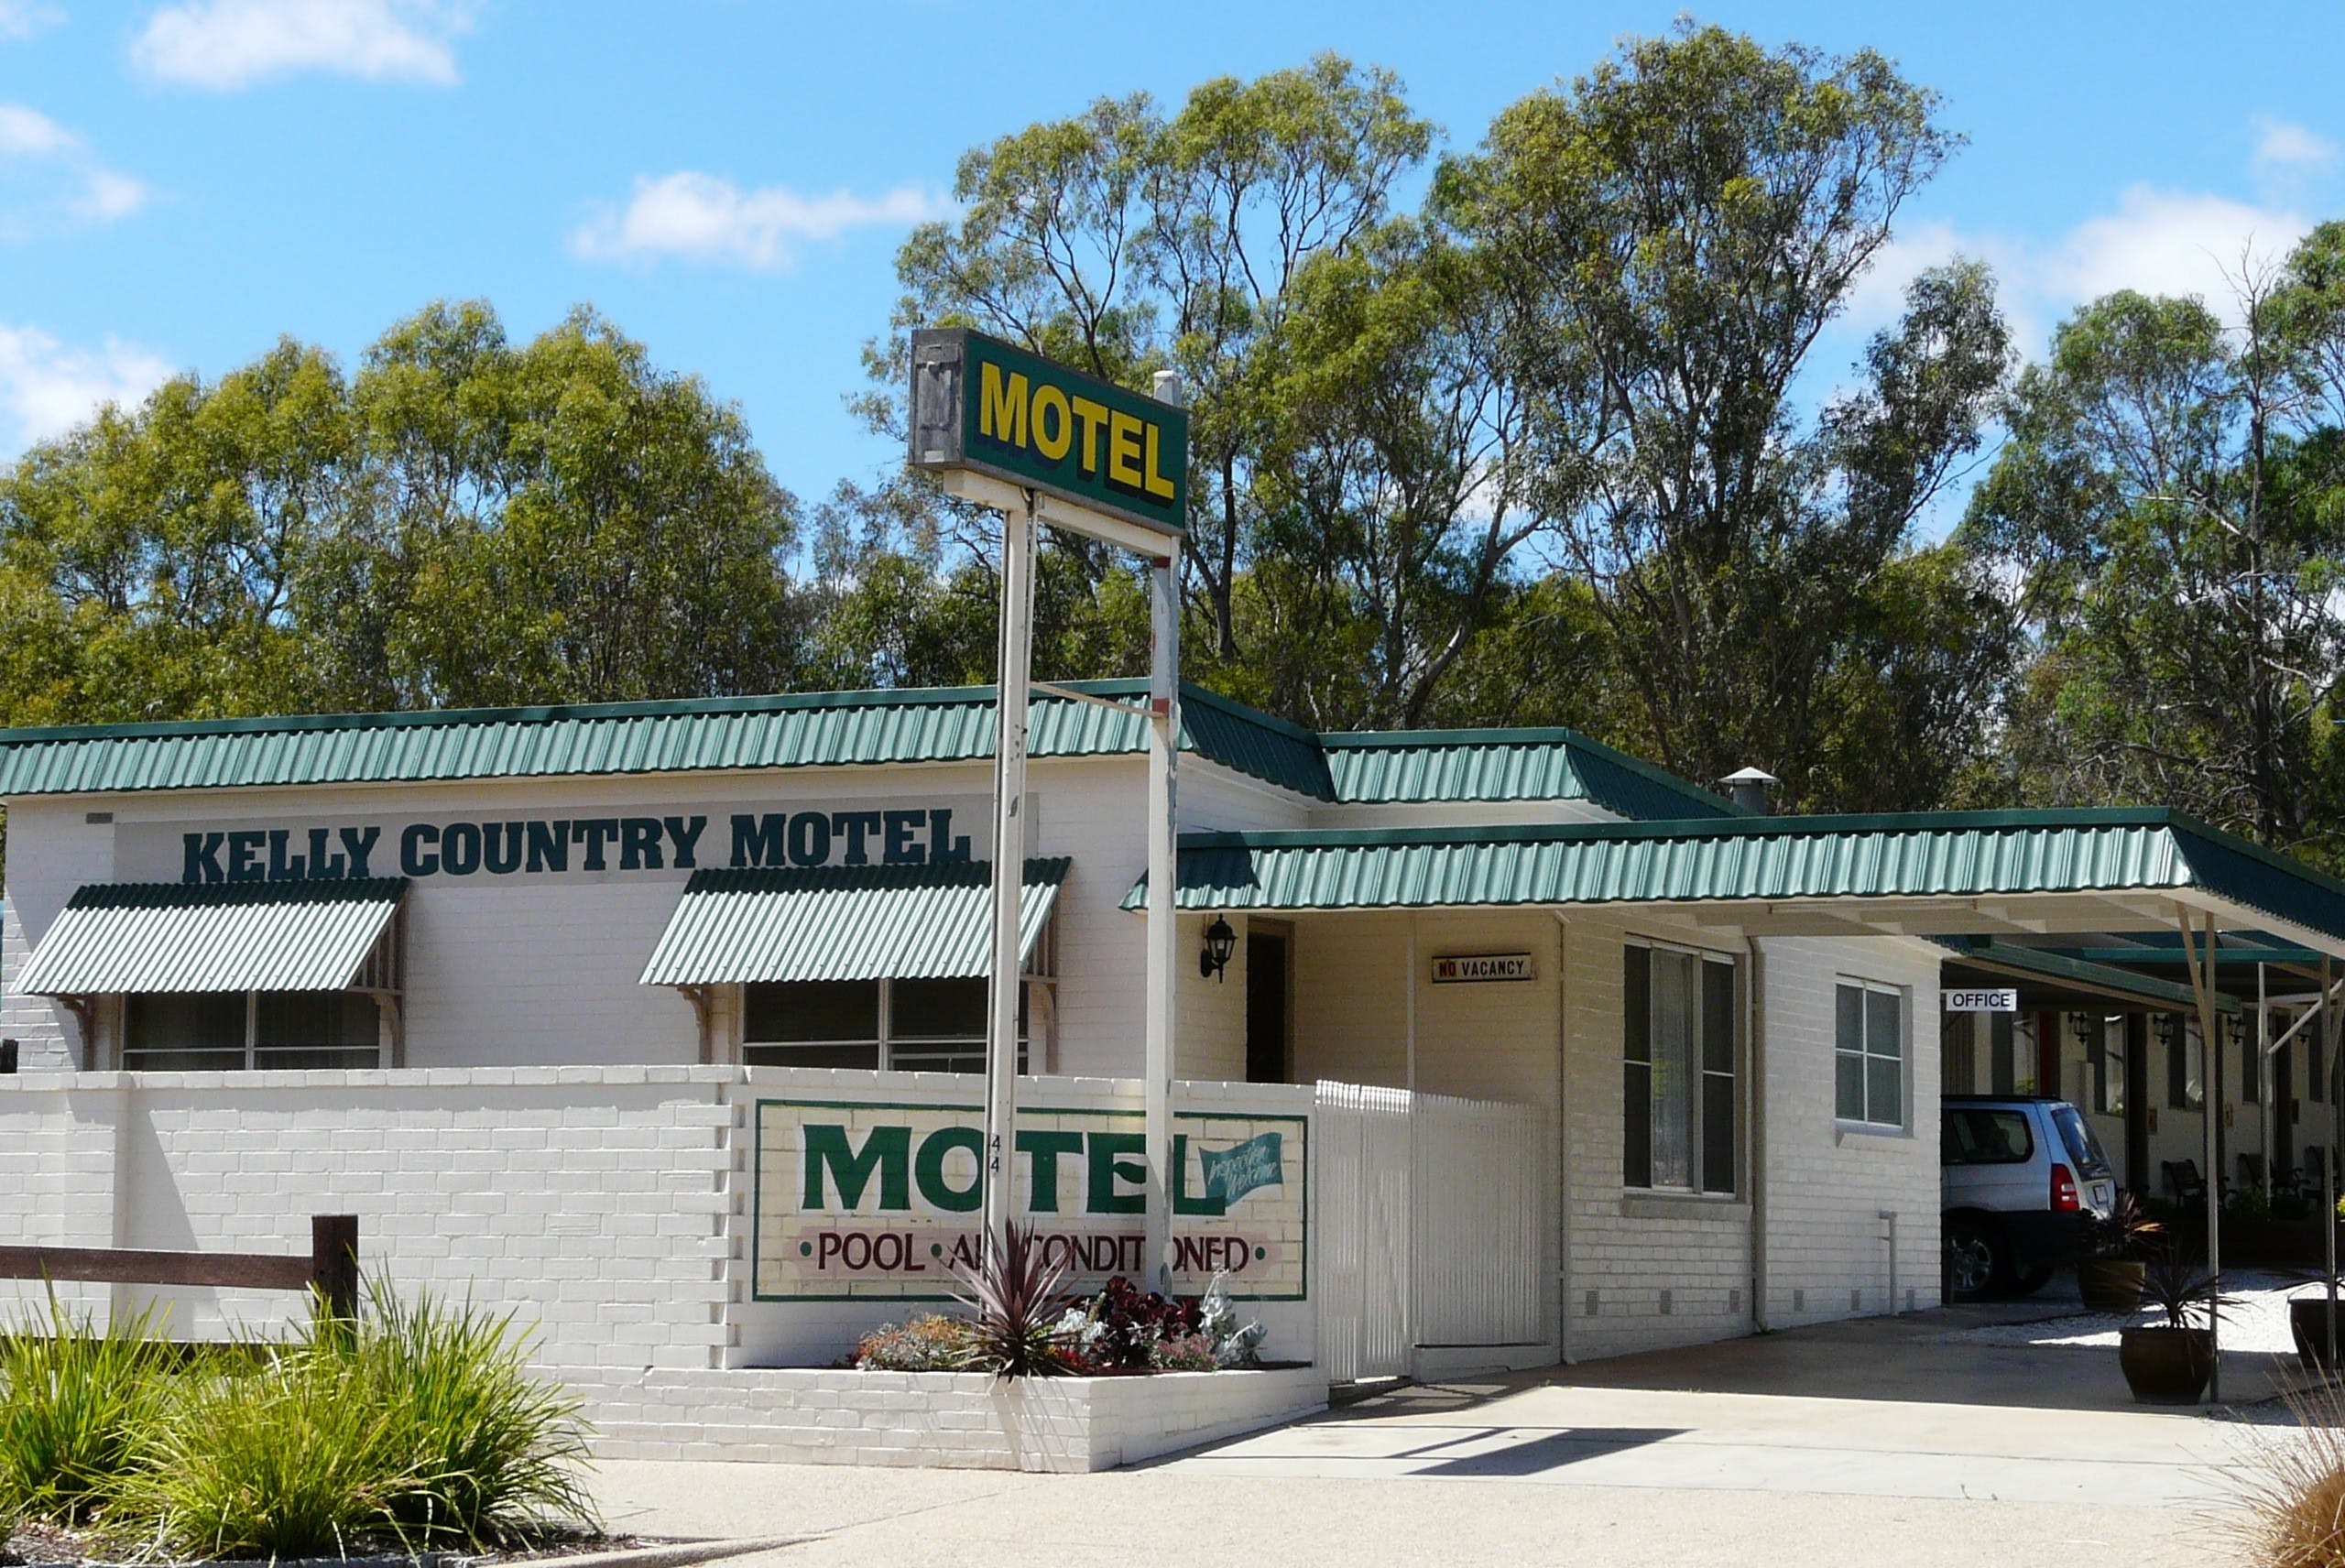 Glenrowan Kelly Country Motel - Mackay Tourism